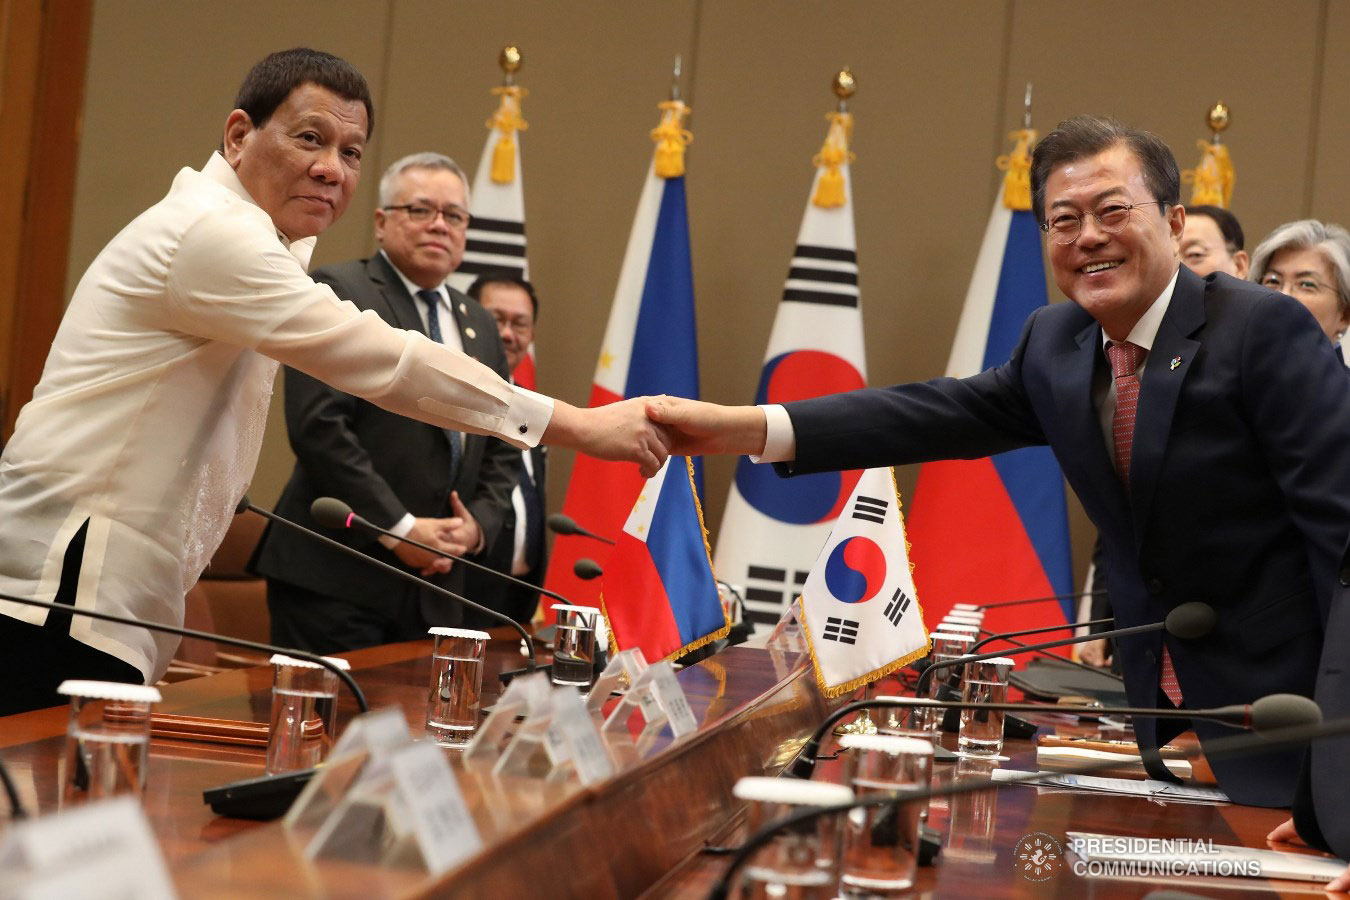 In photos:  PHL President Duterte and South Korean President Moon forge strong bond during meeting